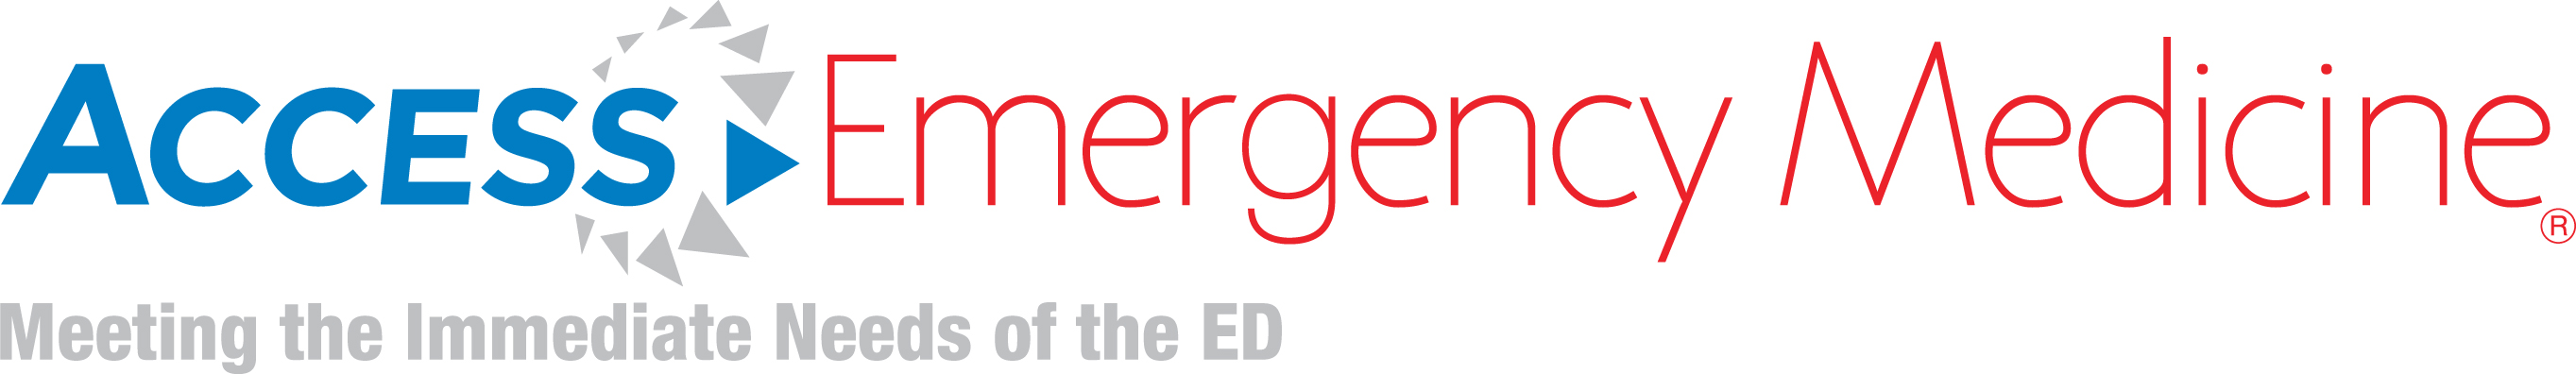 Access Emergency Medicine